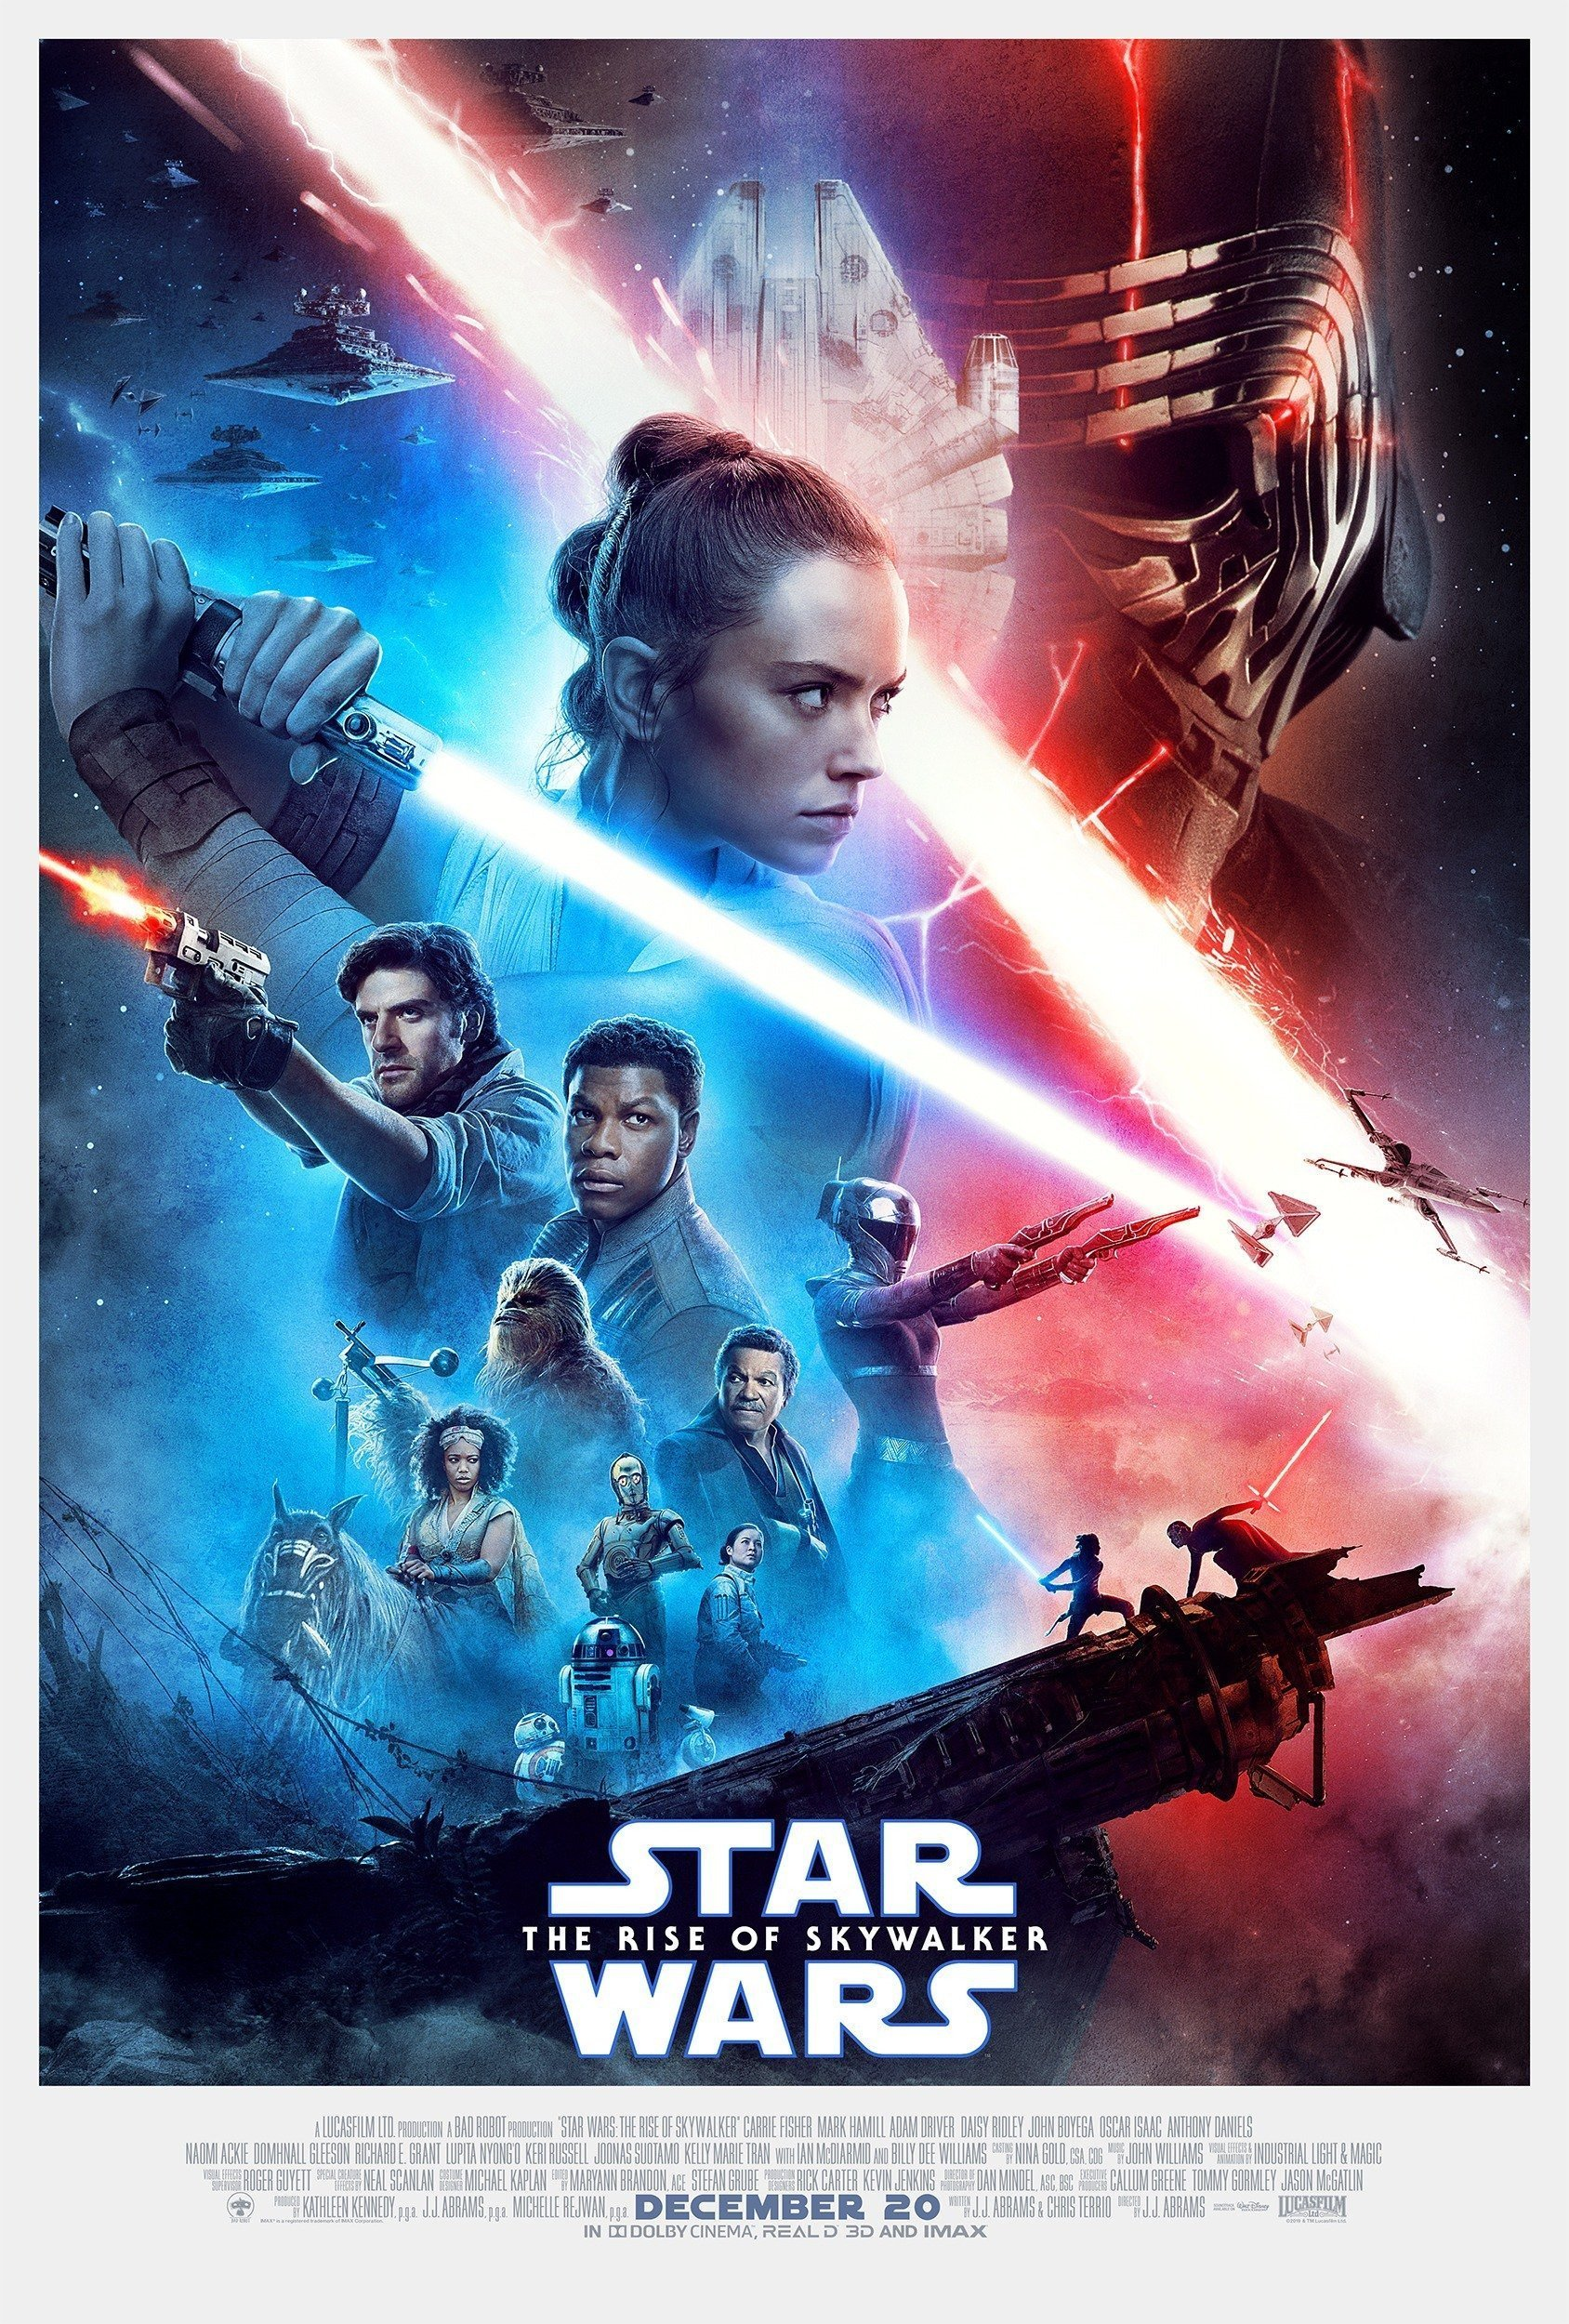 Poster final du film Star Wars: L'Ascension de Skywalker (Star Wars: The Rise of Skywalker en VO)